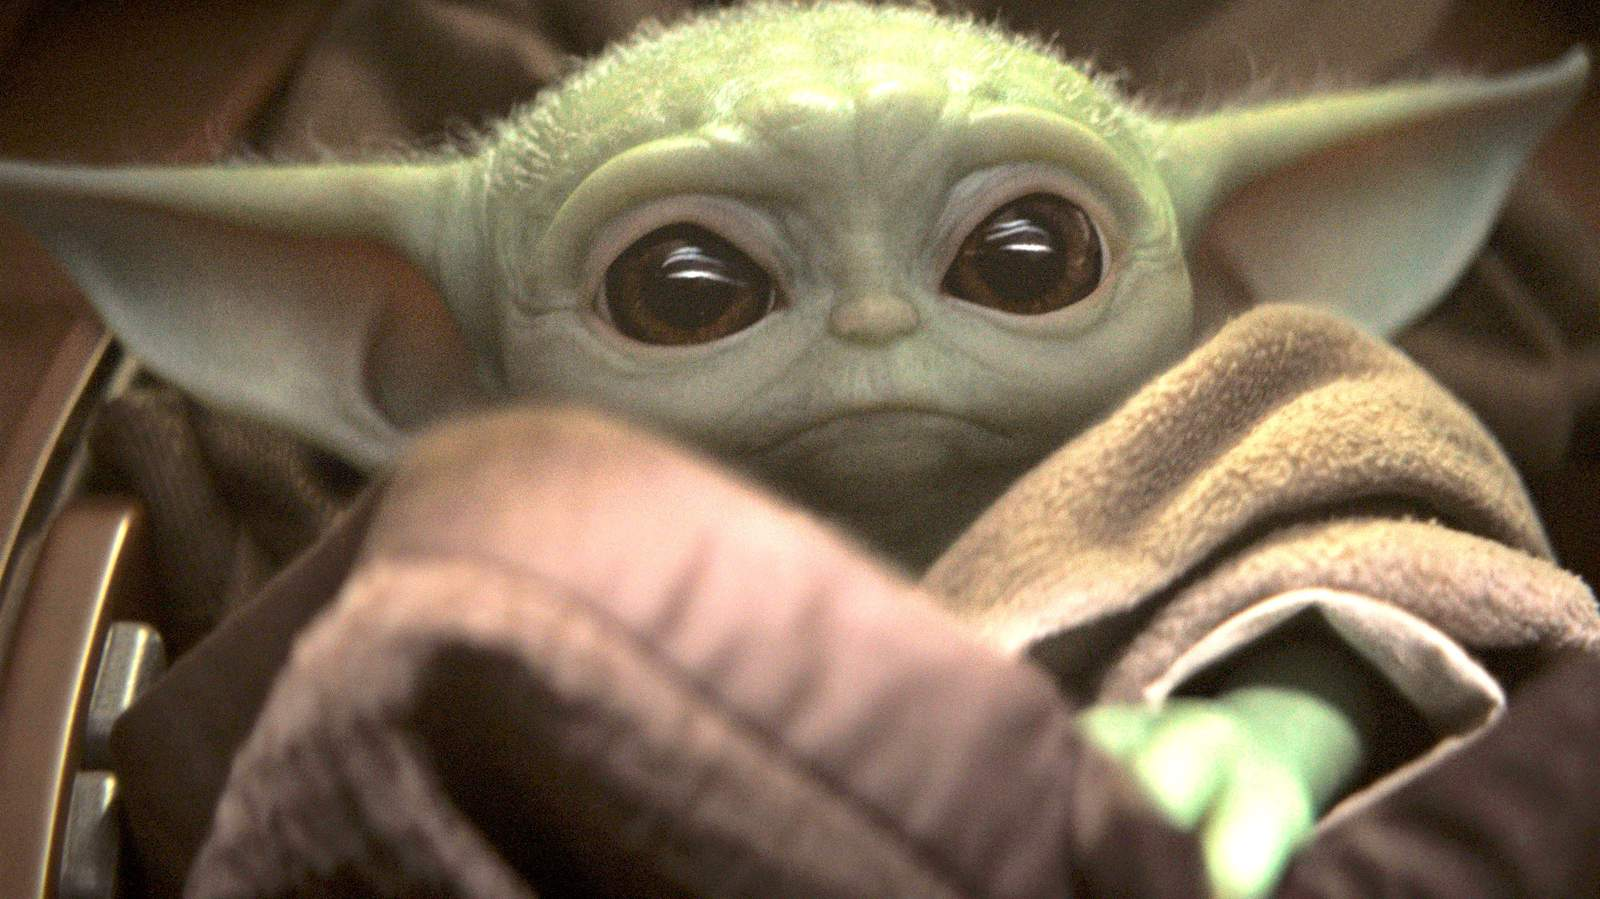 Baby Yoda Catches Ride On Spacex Crew Dragon Into Orbit With Astronauts